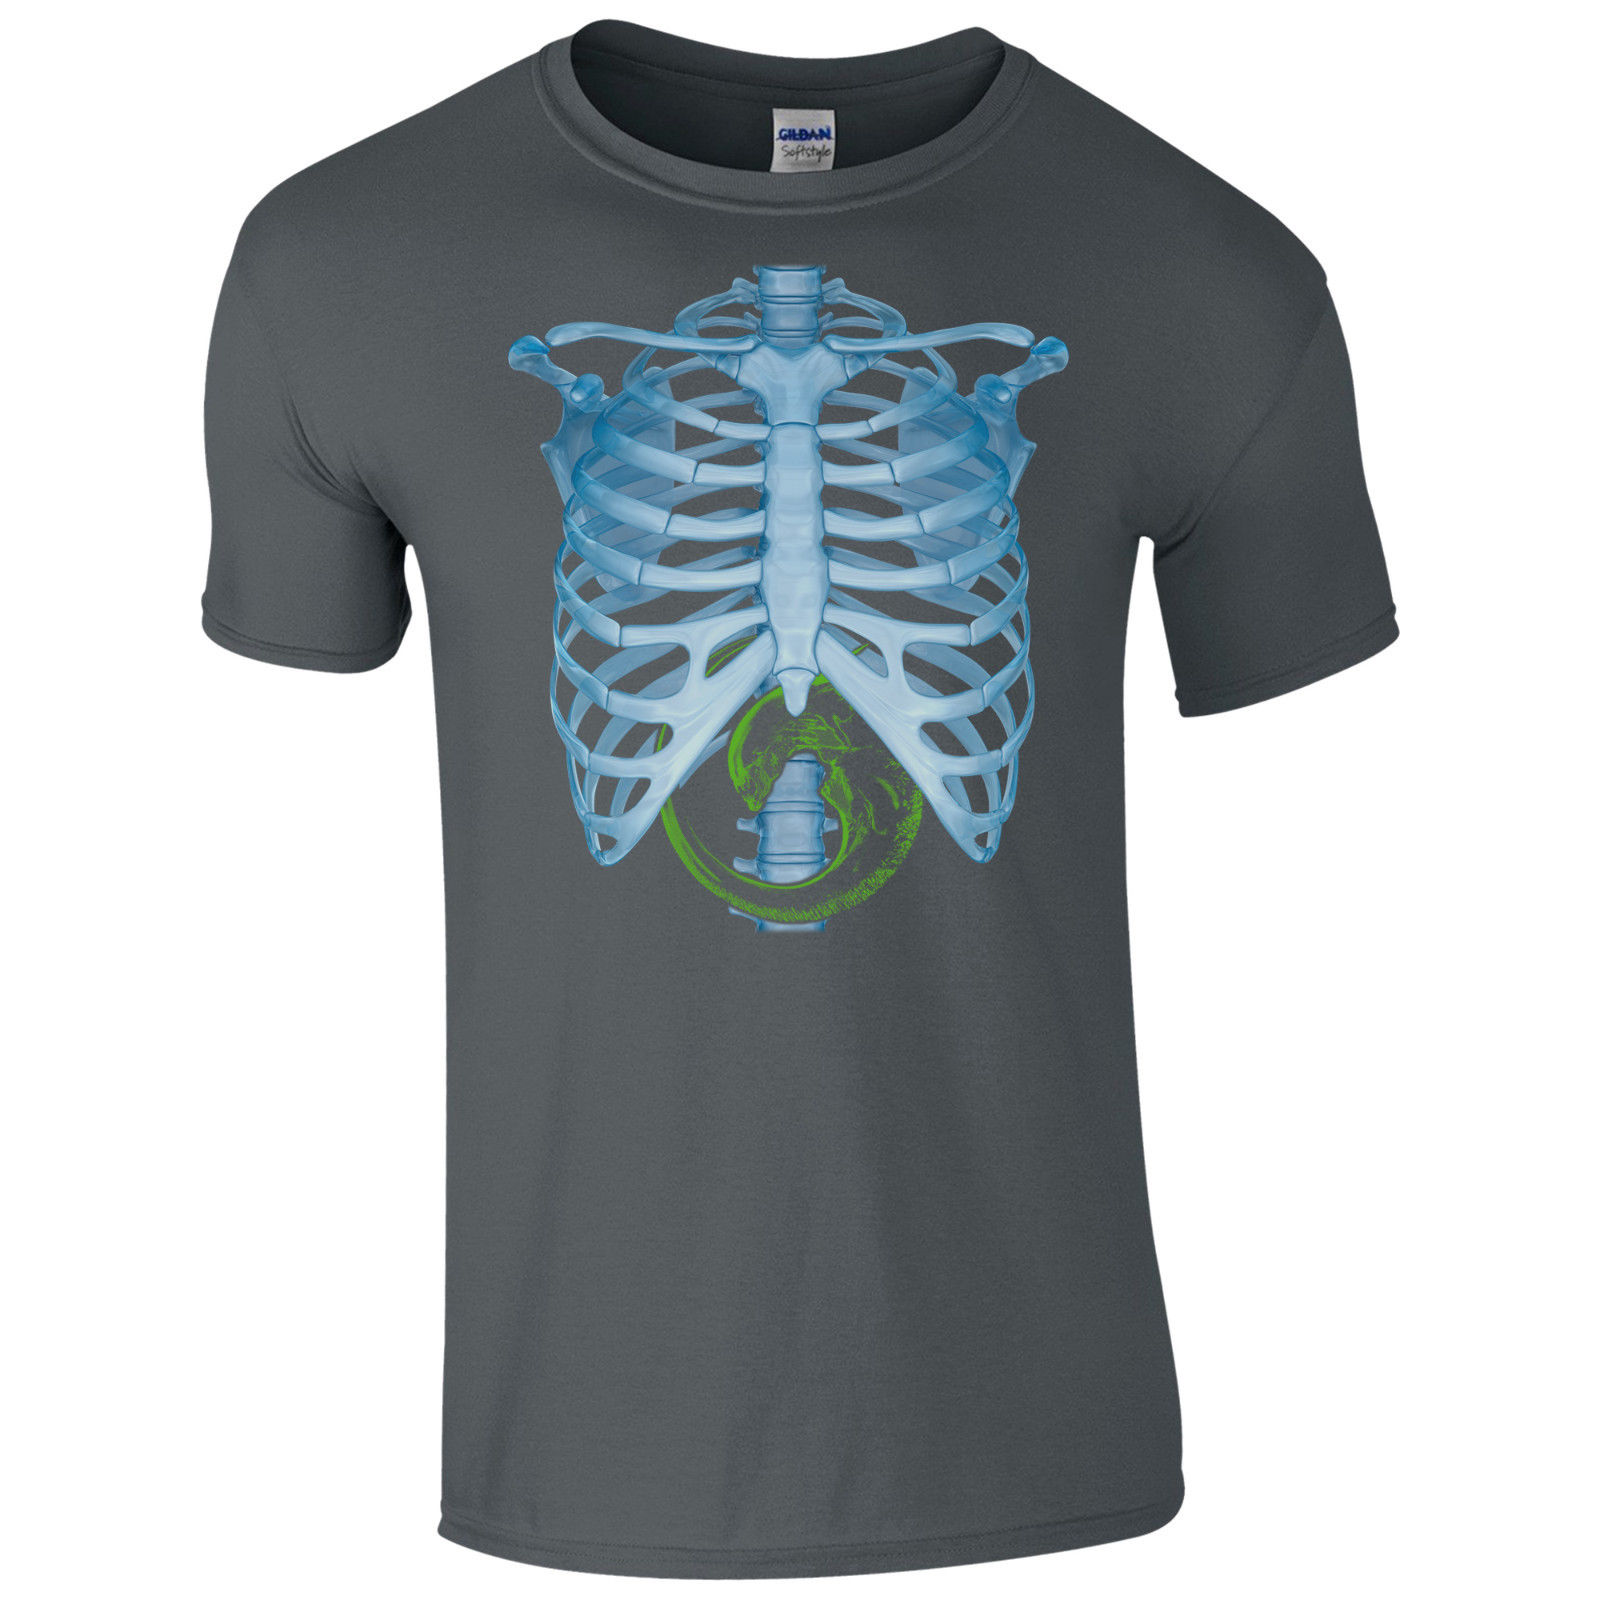 US $13 04 13% OFF Alien Body X Ray T Shirt Xenomorph Baby XRay Covenant Fan  Sci Fi Mens Gift Top Printed T Shirt 2017 Fashion Brand Top Tee-in